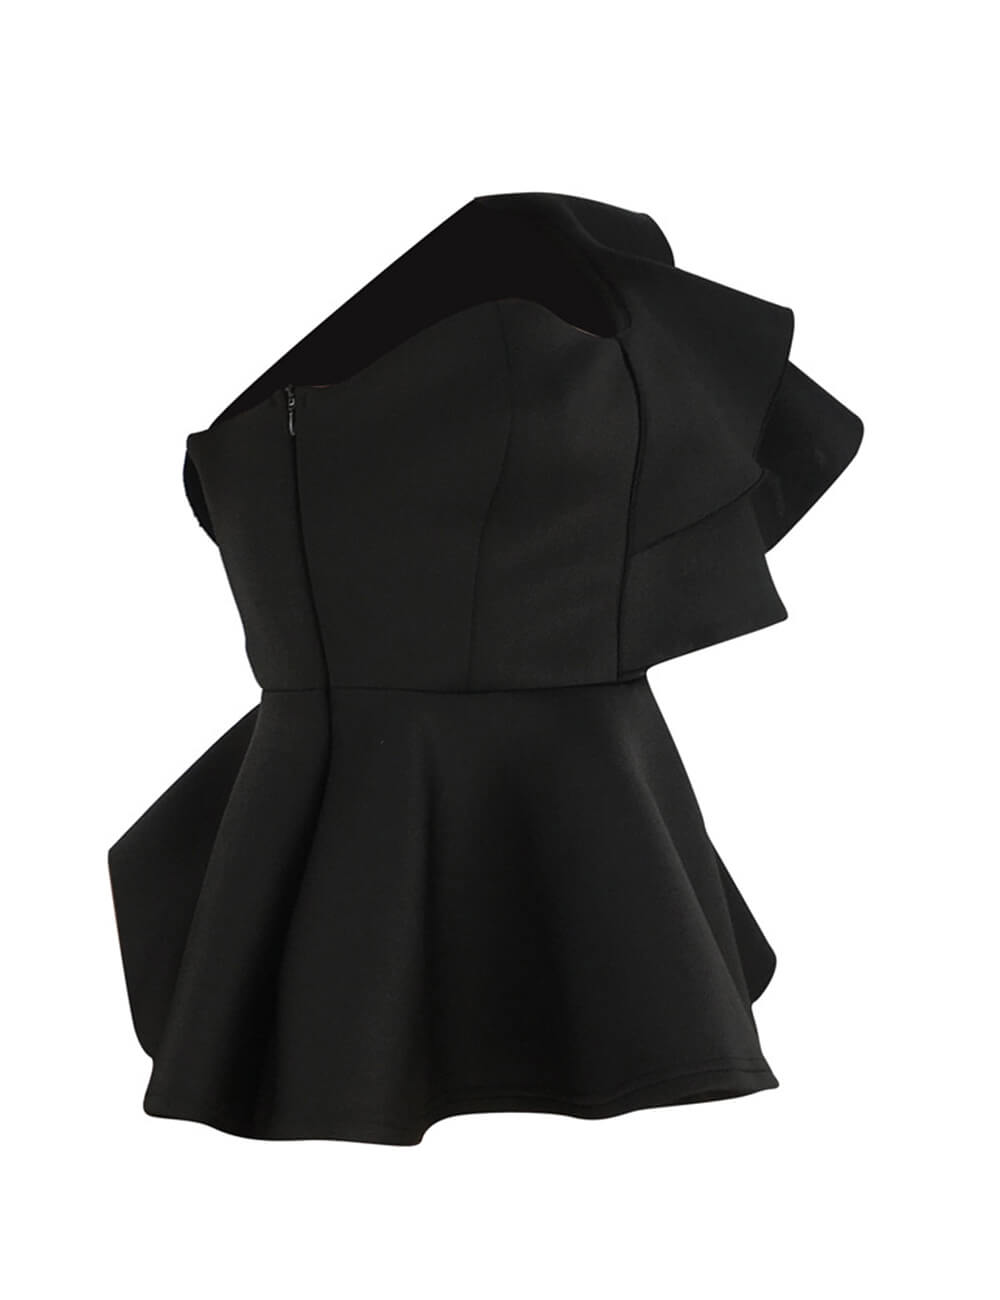 Chic Ruffle Trim High Class Shirt Tops Tube Top Long Sleeve Peplum Bodycon Slim Fit One Shoulder Blouse